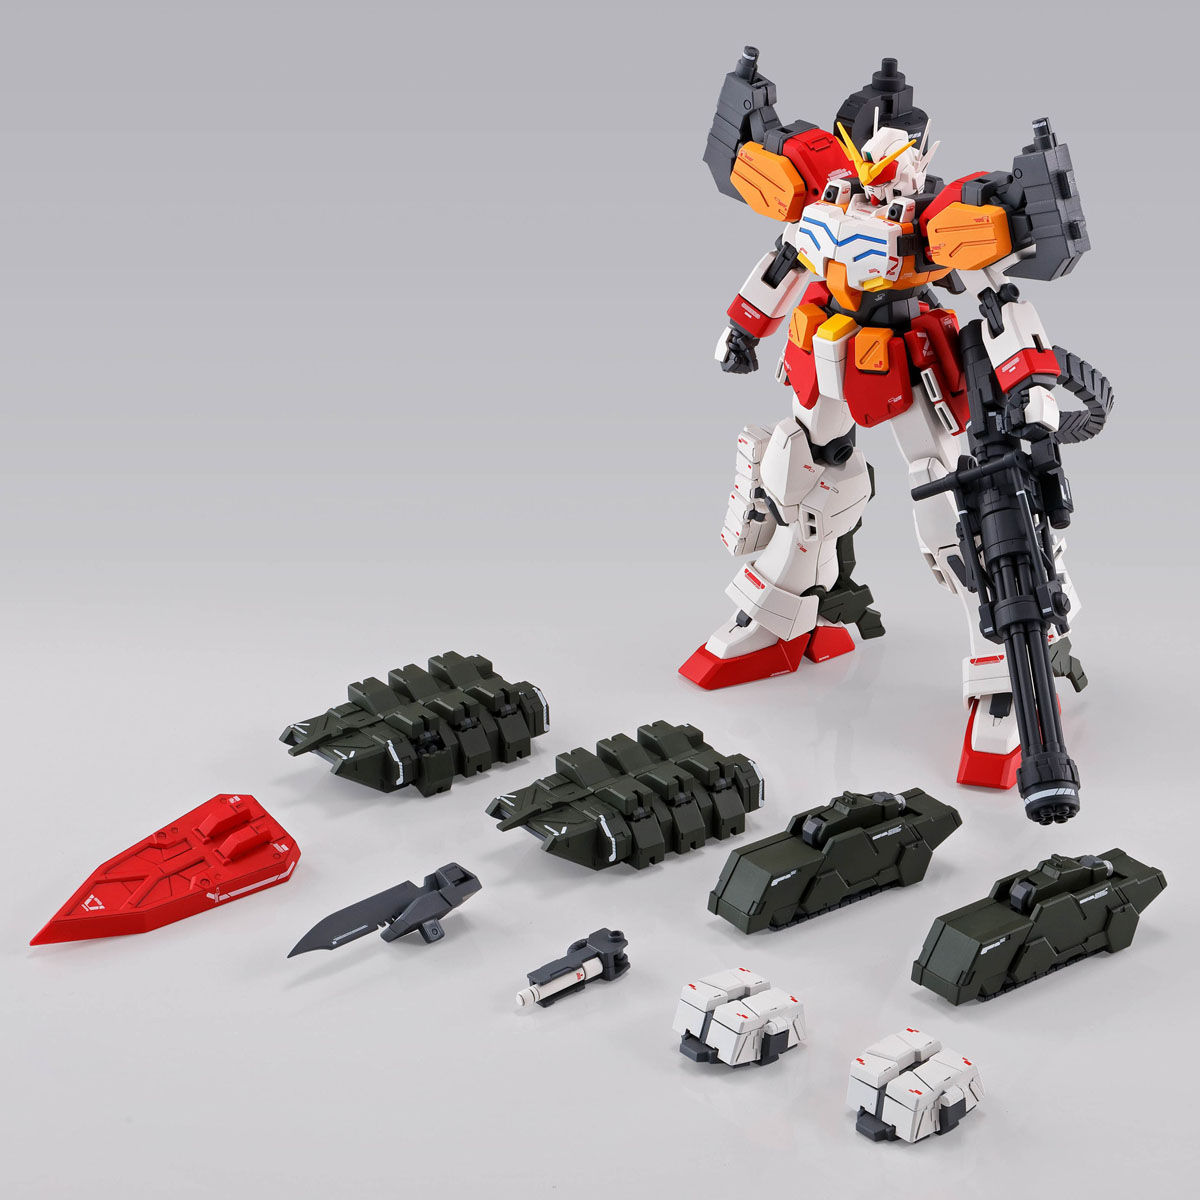 MG 1/100 GUNDAM HEAVYARMS EW (IGEL UNIT) [Feb 2020 Delivery]